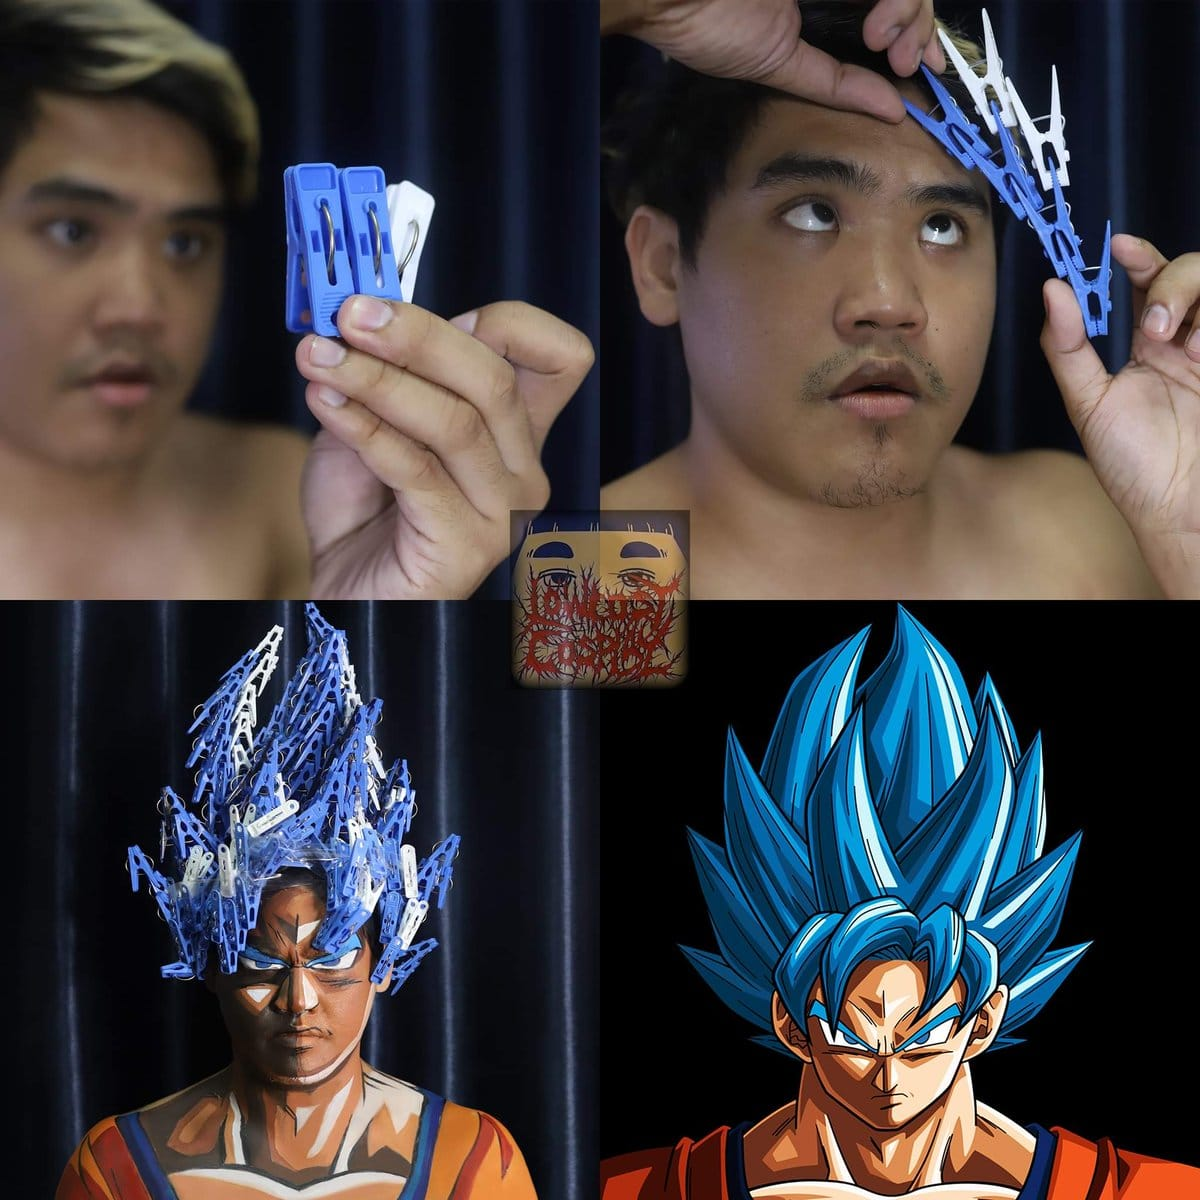 Lonelyman using his creativity to recreates the Super Saiyan Blue look.